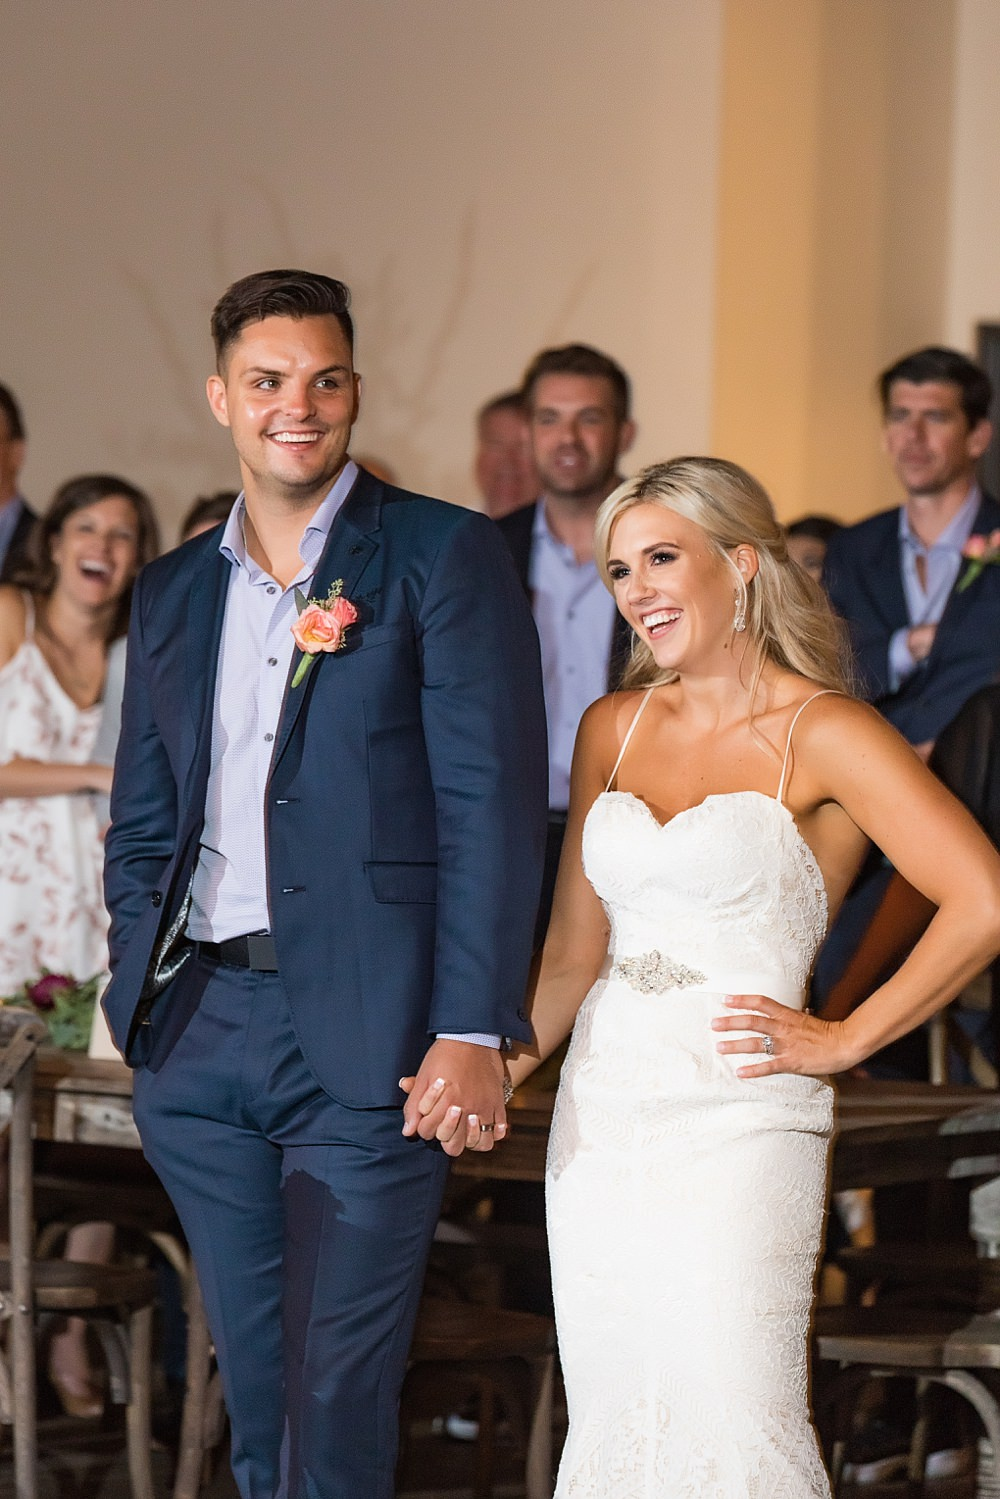 stave room wedding : l events : vue photography 0074